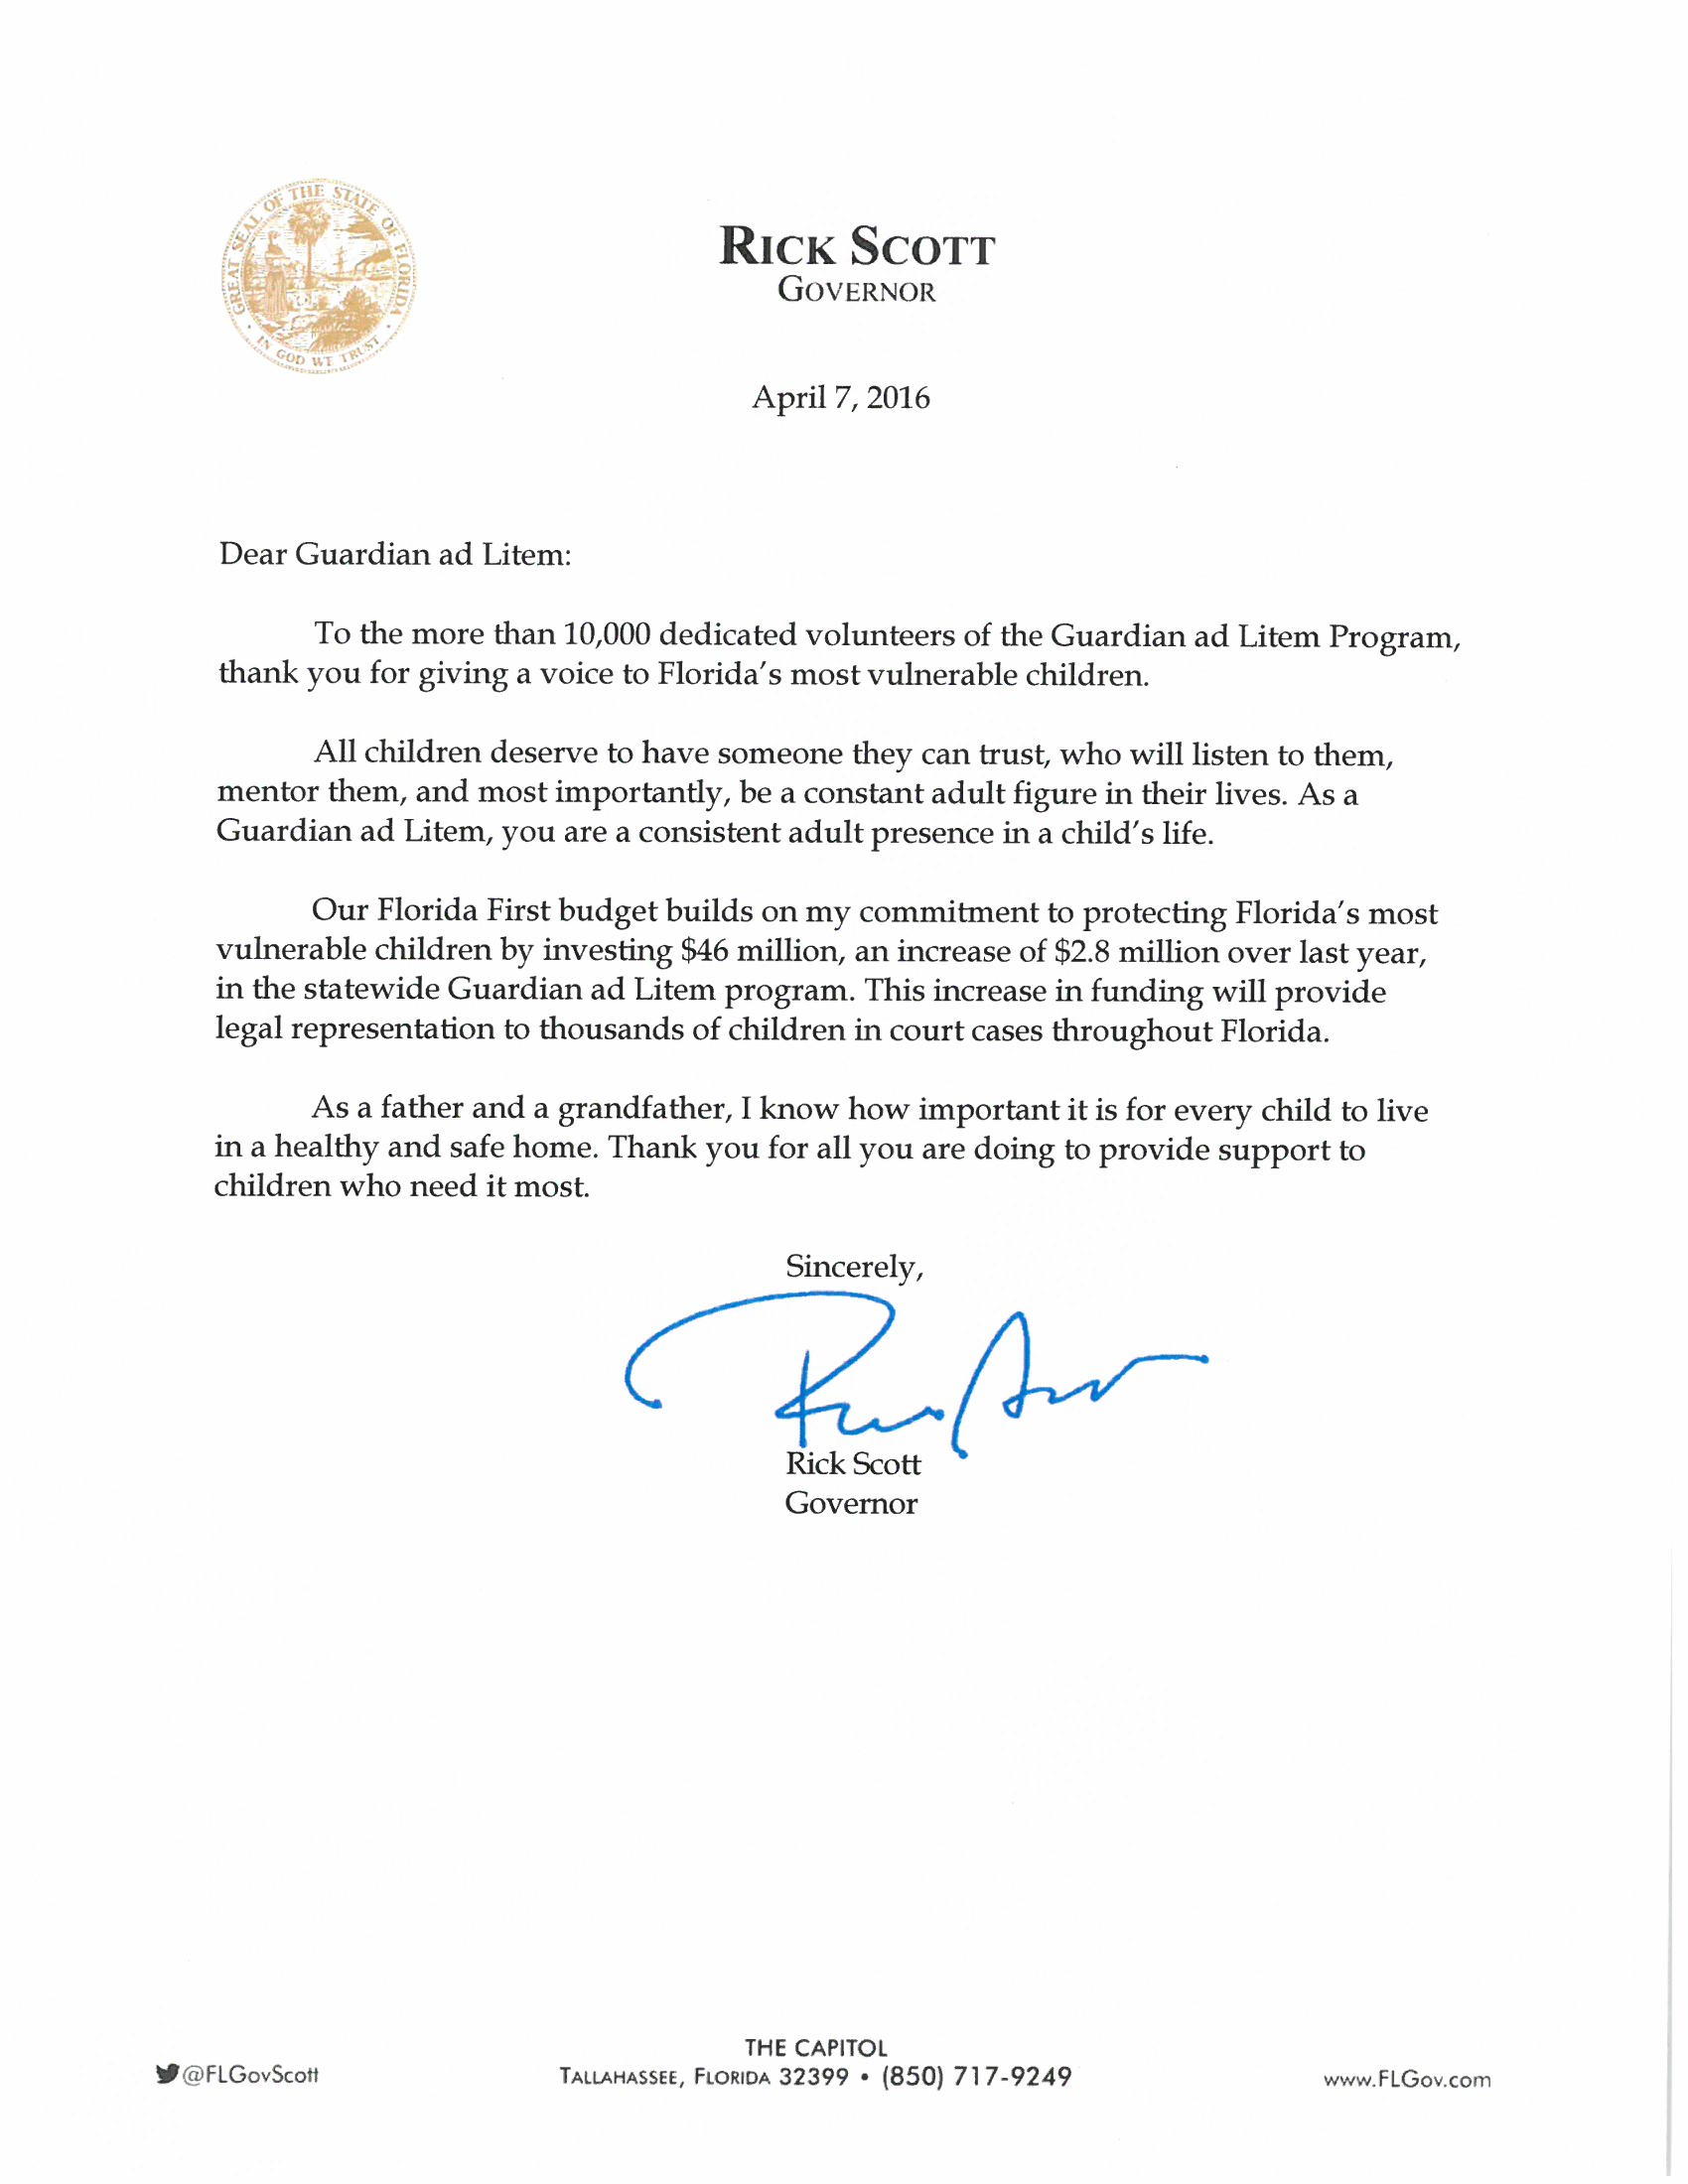 Governor Rick Scott's Personal Letter to GAL Volunteers